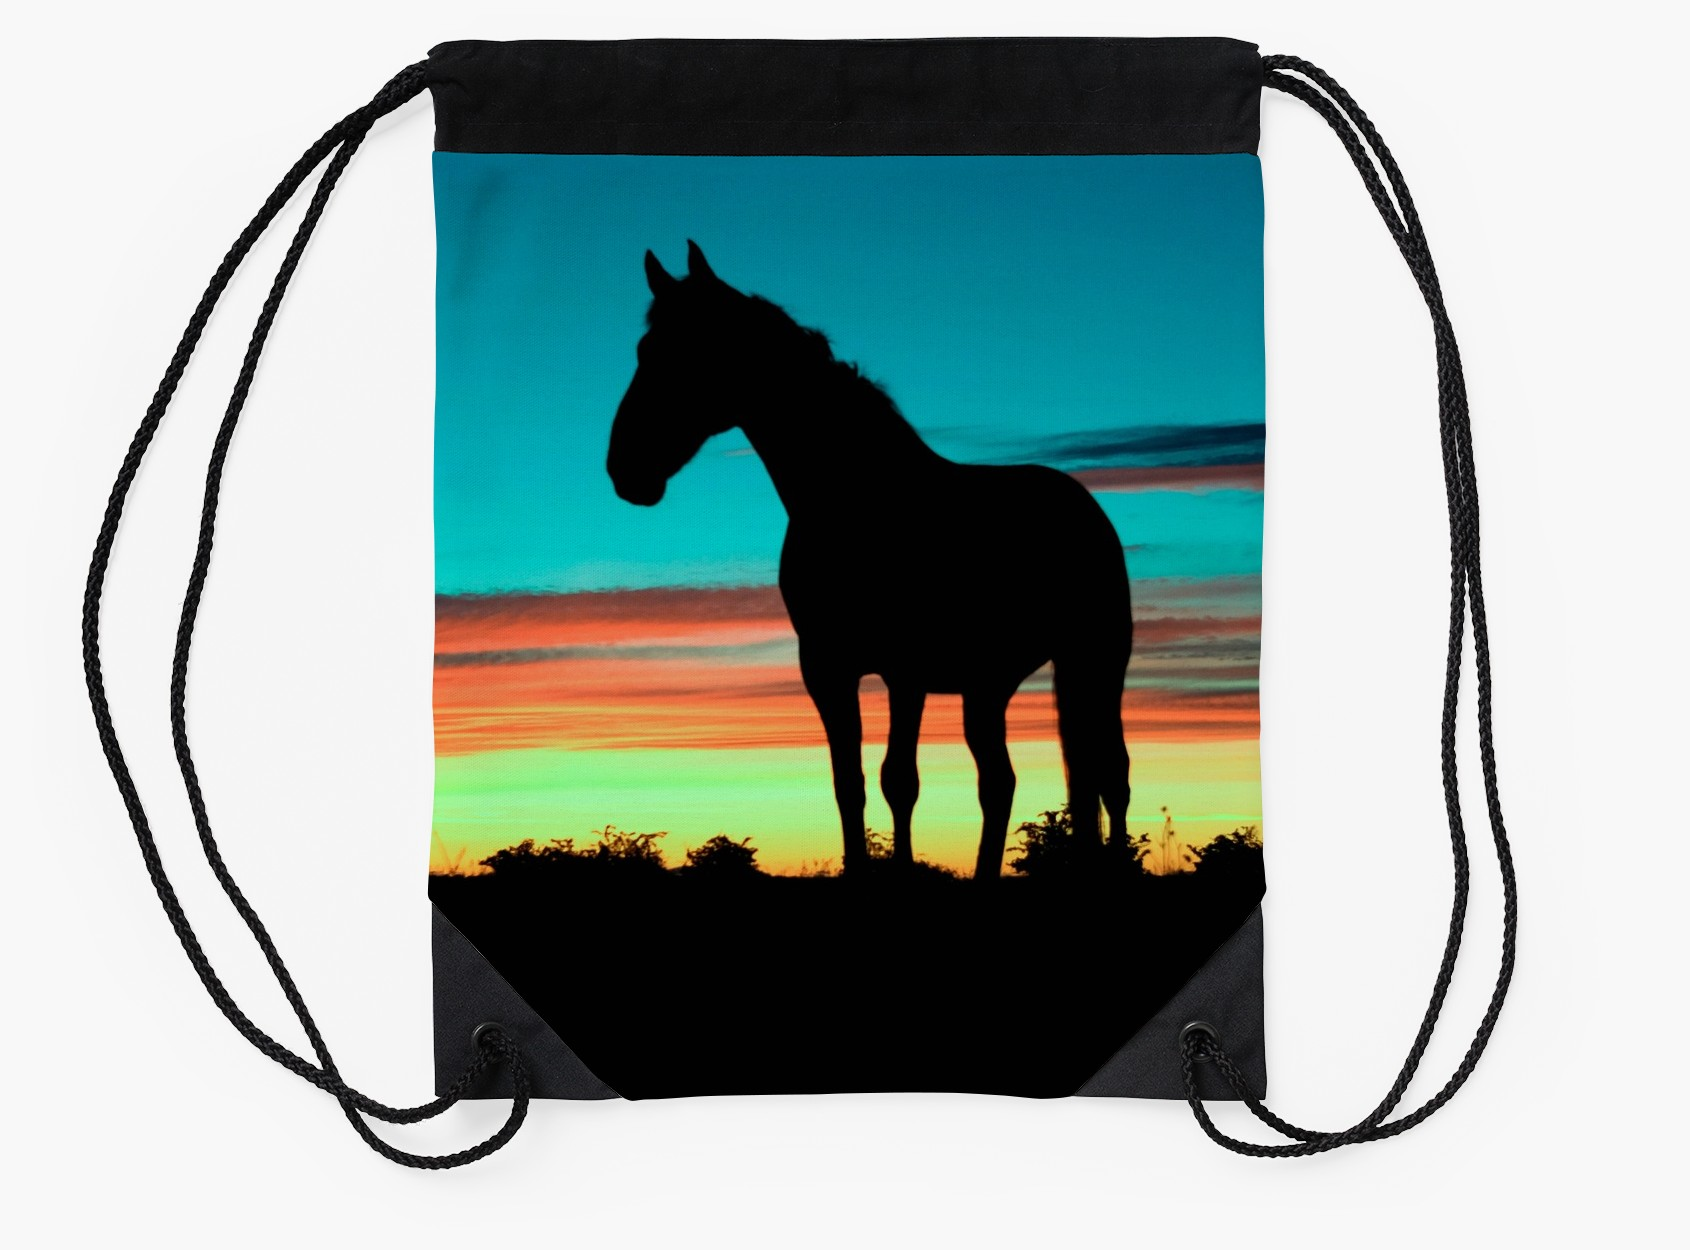 1690x1250 Humpy Horse Silhouette Sunset Psychedelic Drawstring Bags By